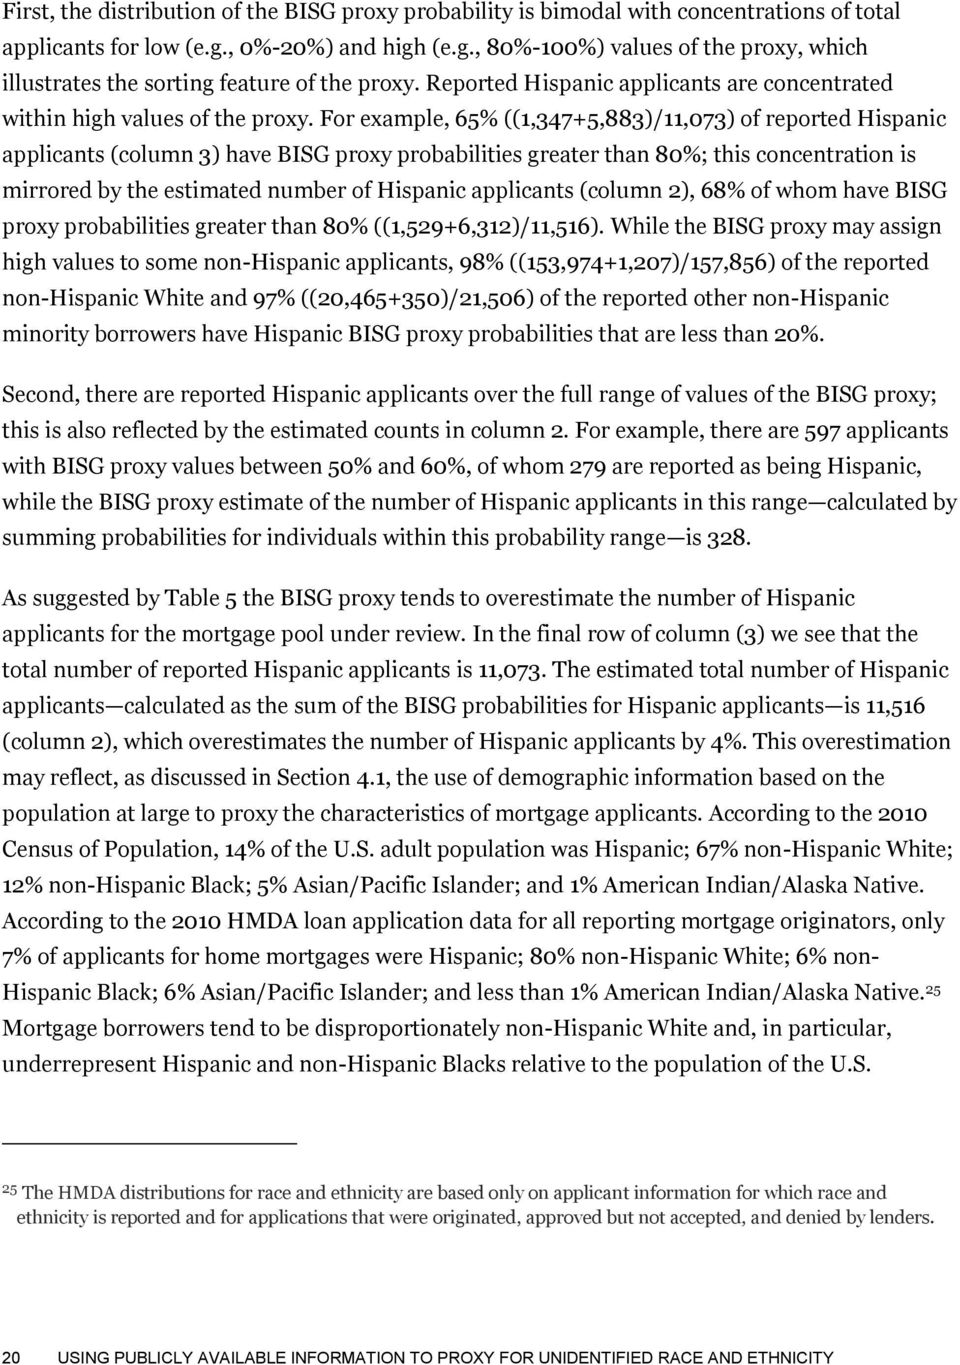 For example, 65% ((1,347+5,883)/11,073) of reported Hispanic applicants (column 3) have BISG proxy probabilities greater than 80%; this concentration is mirrored by the estimated number of Hispanic